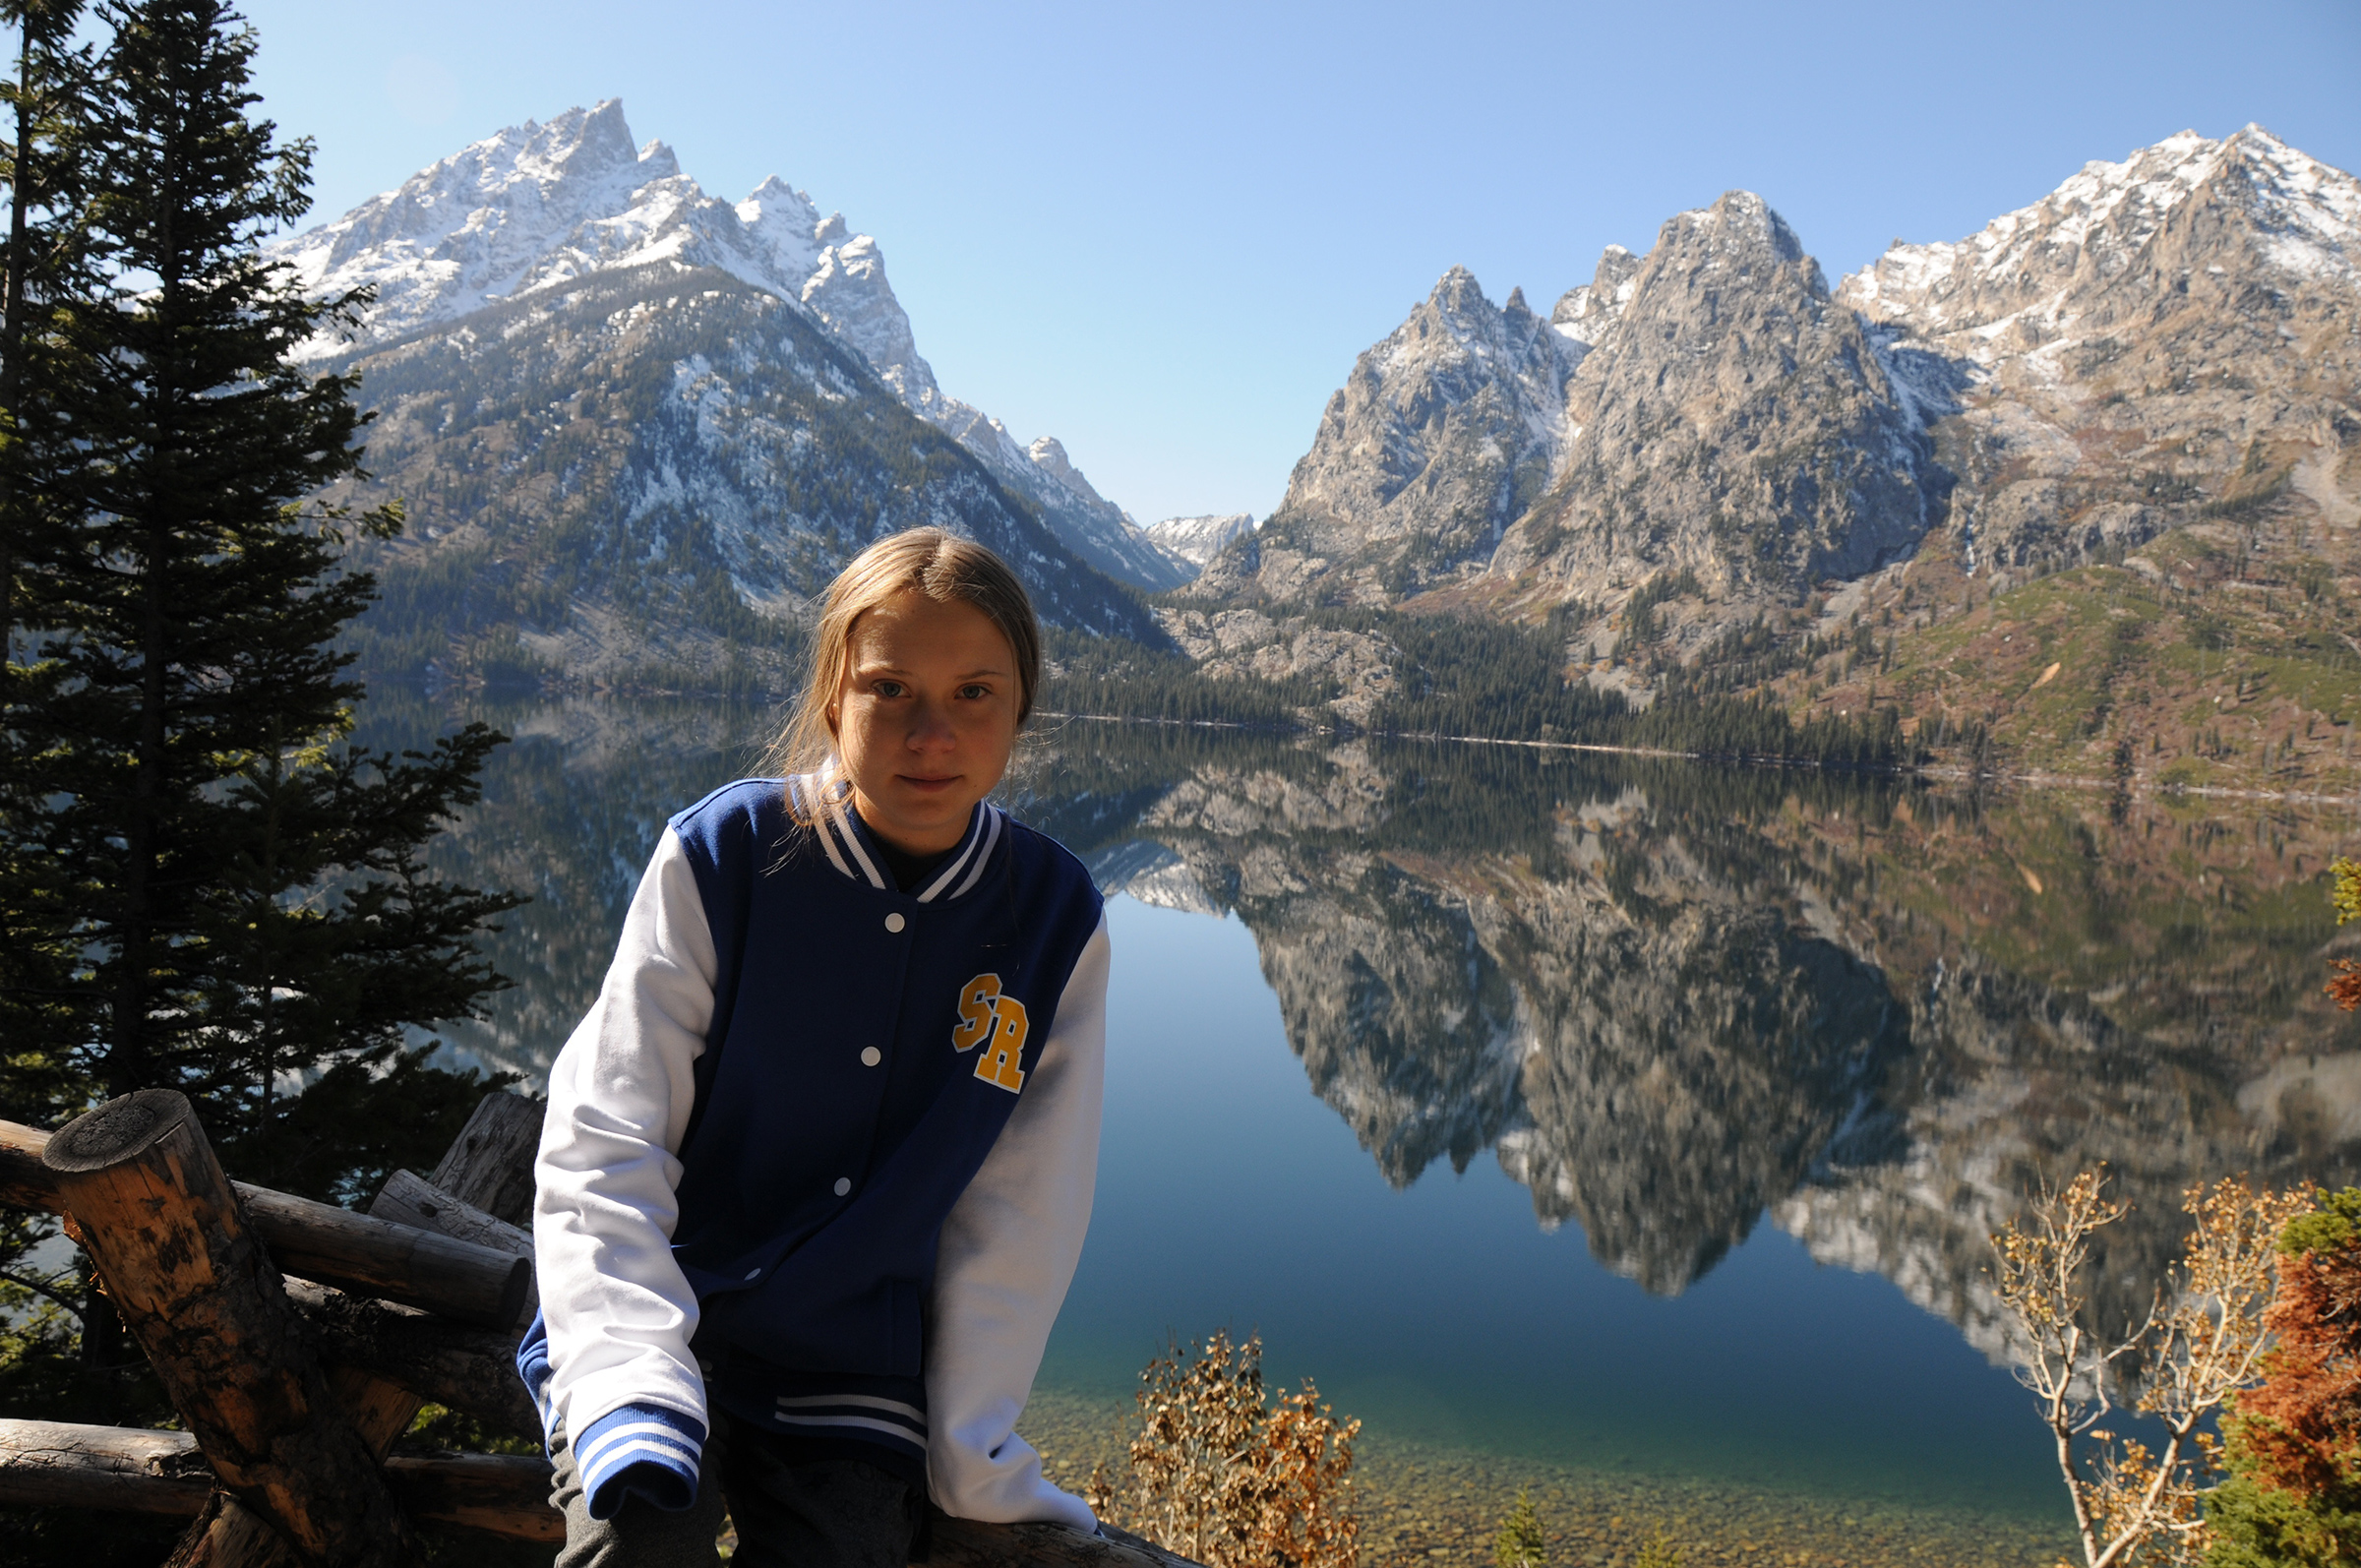 Thunberg visits Grand Teton National Park in Wyoming, Oct. 2019.